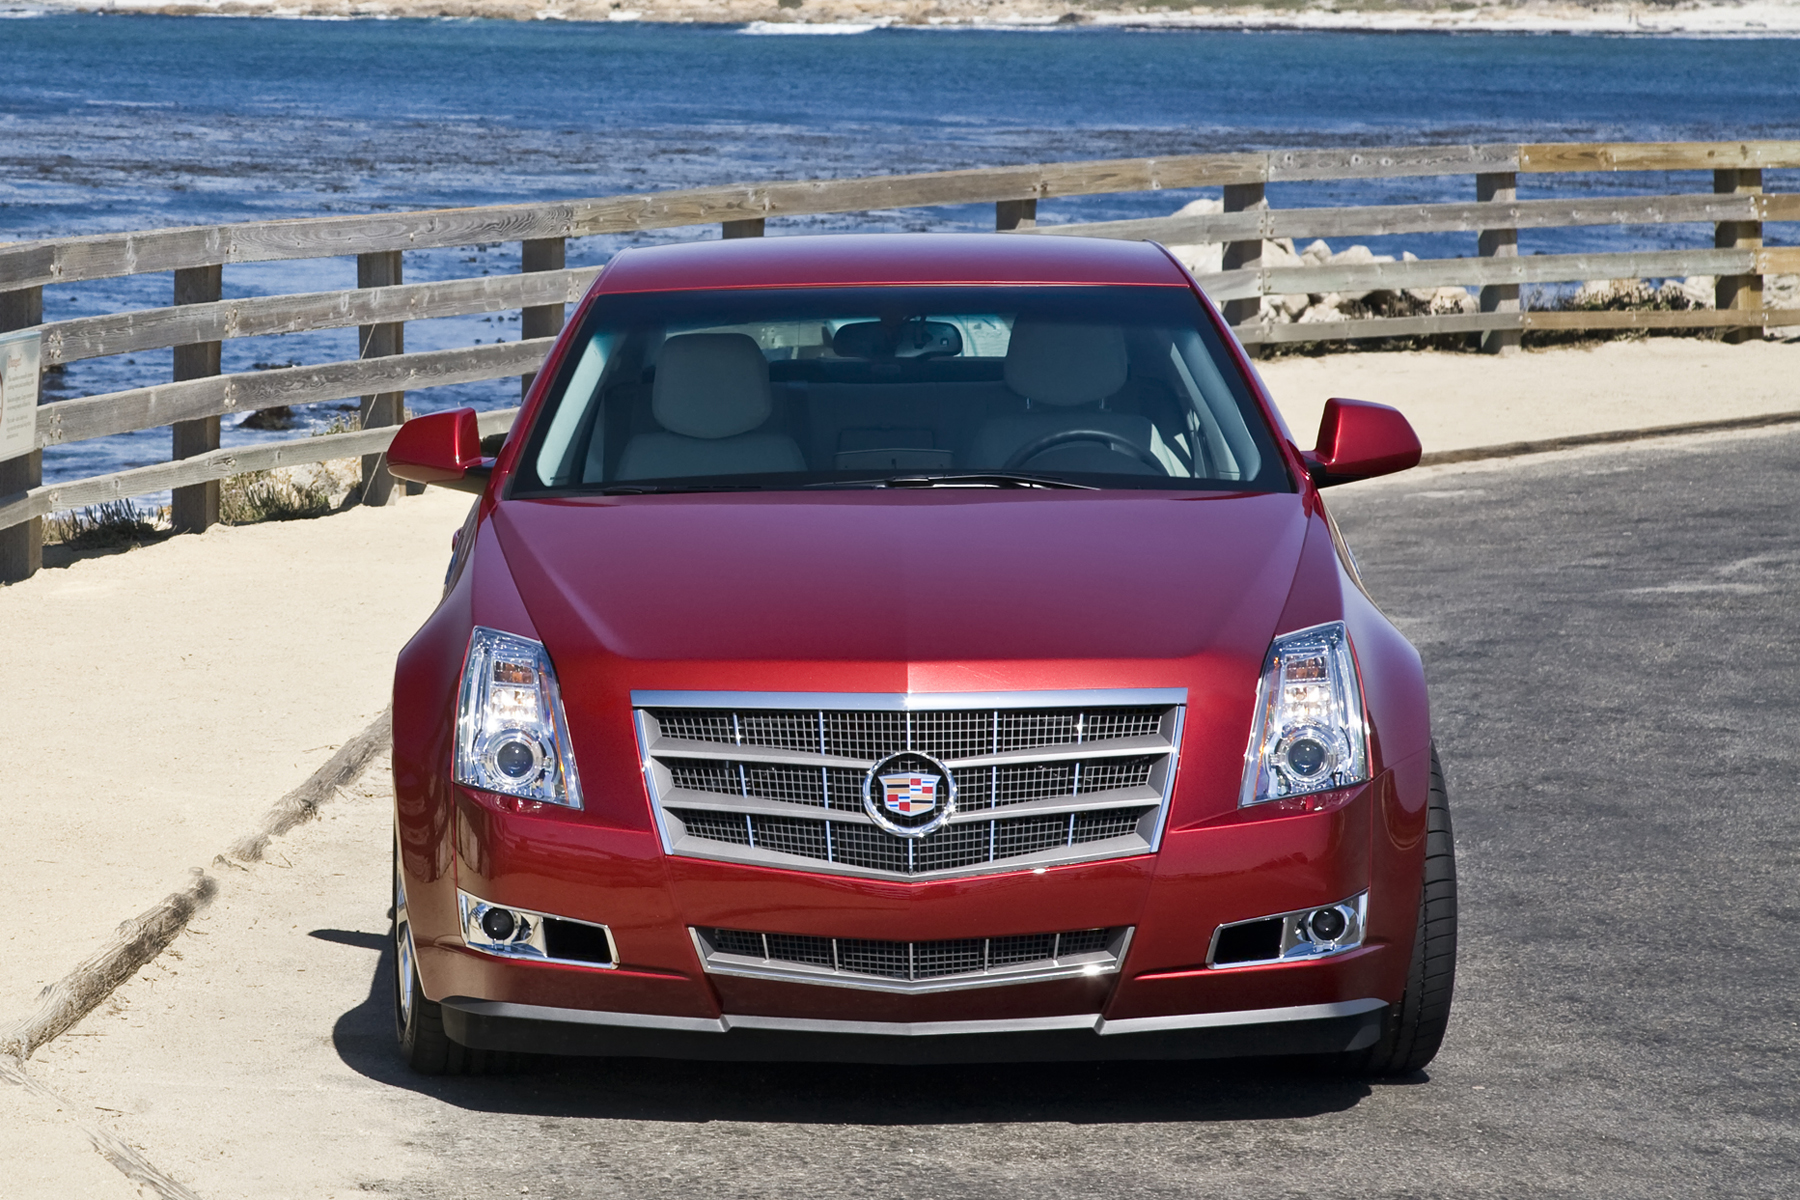 new cadillac paid used escalade sale value car price prices